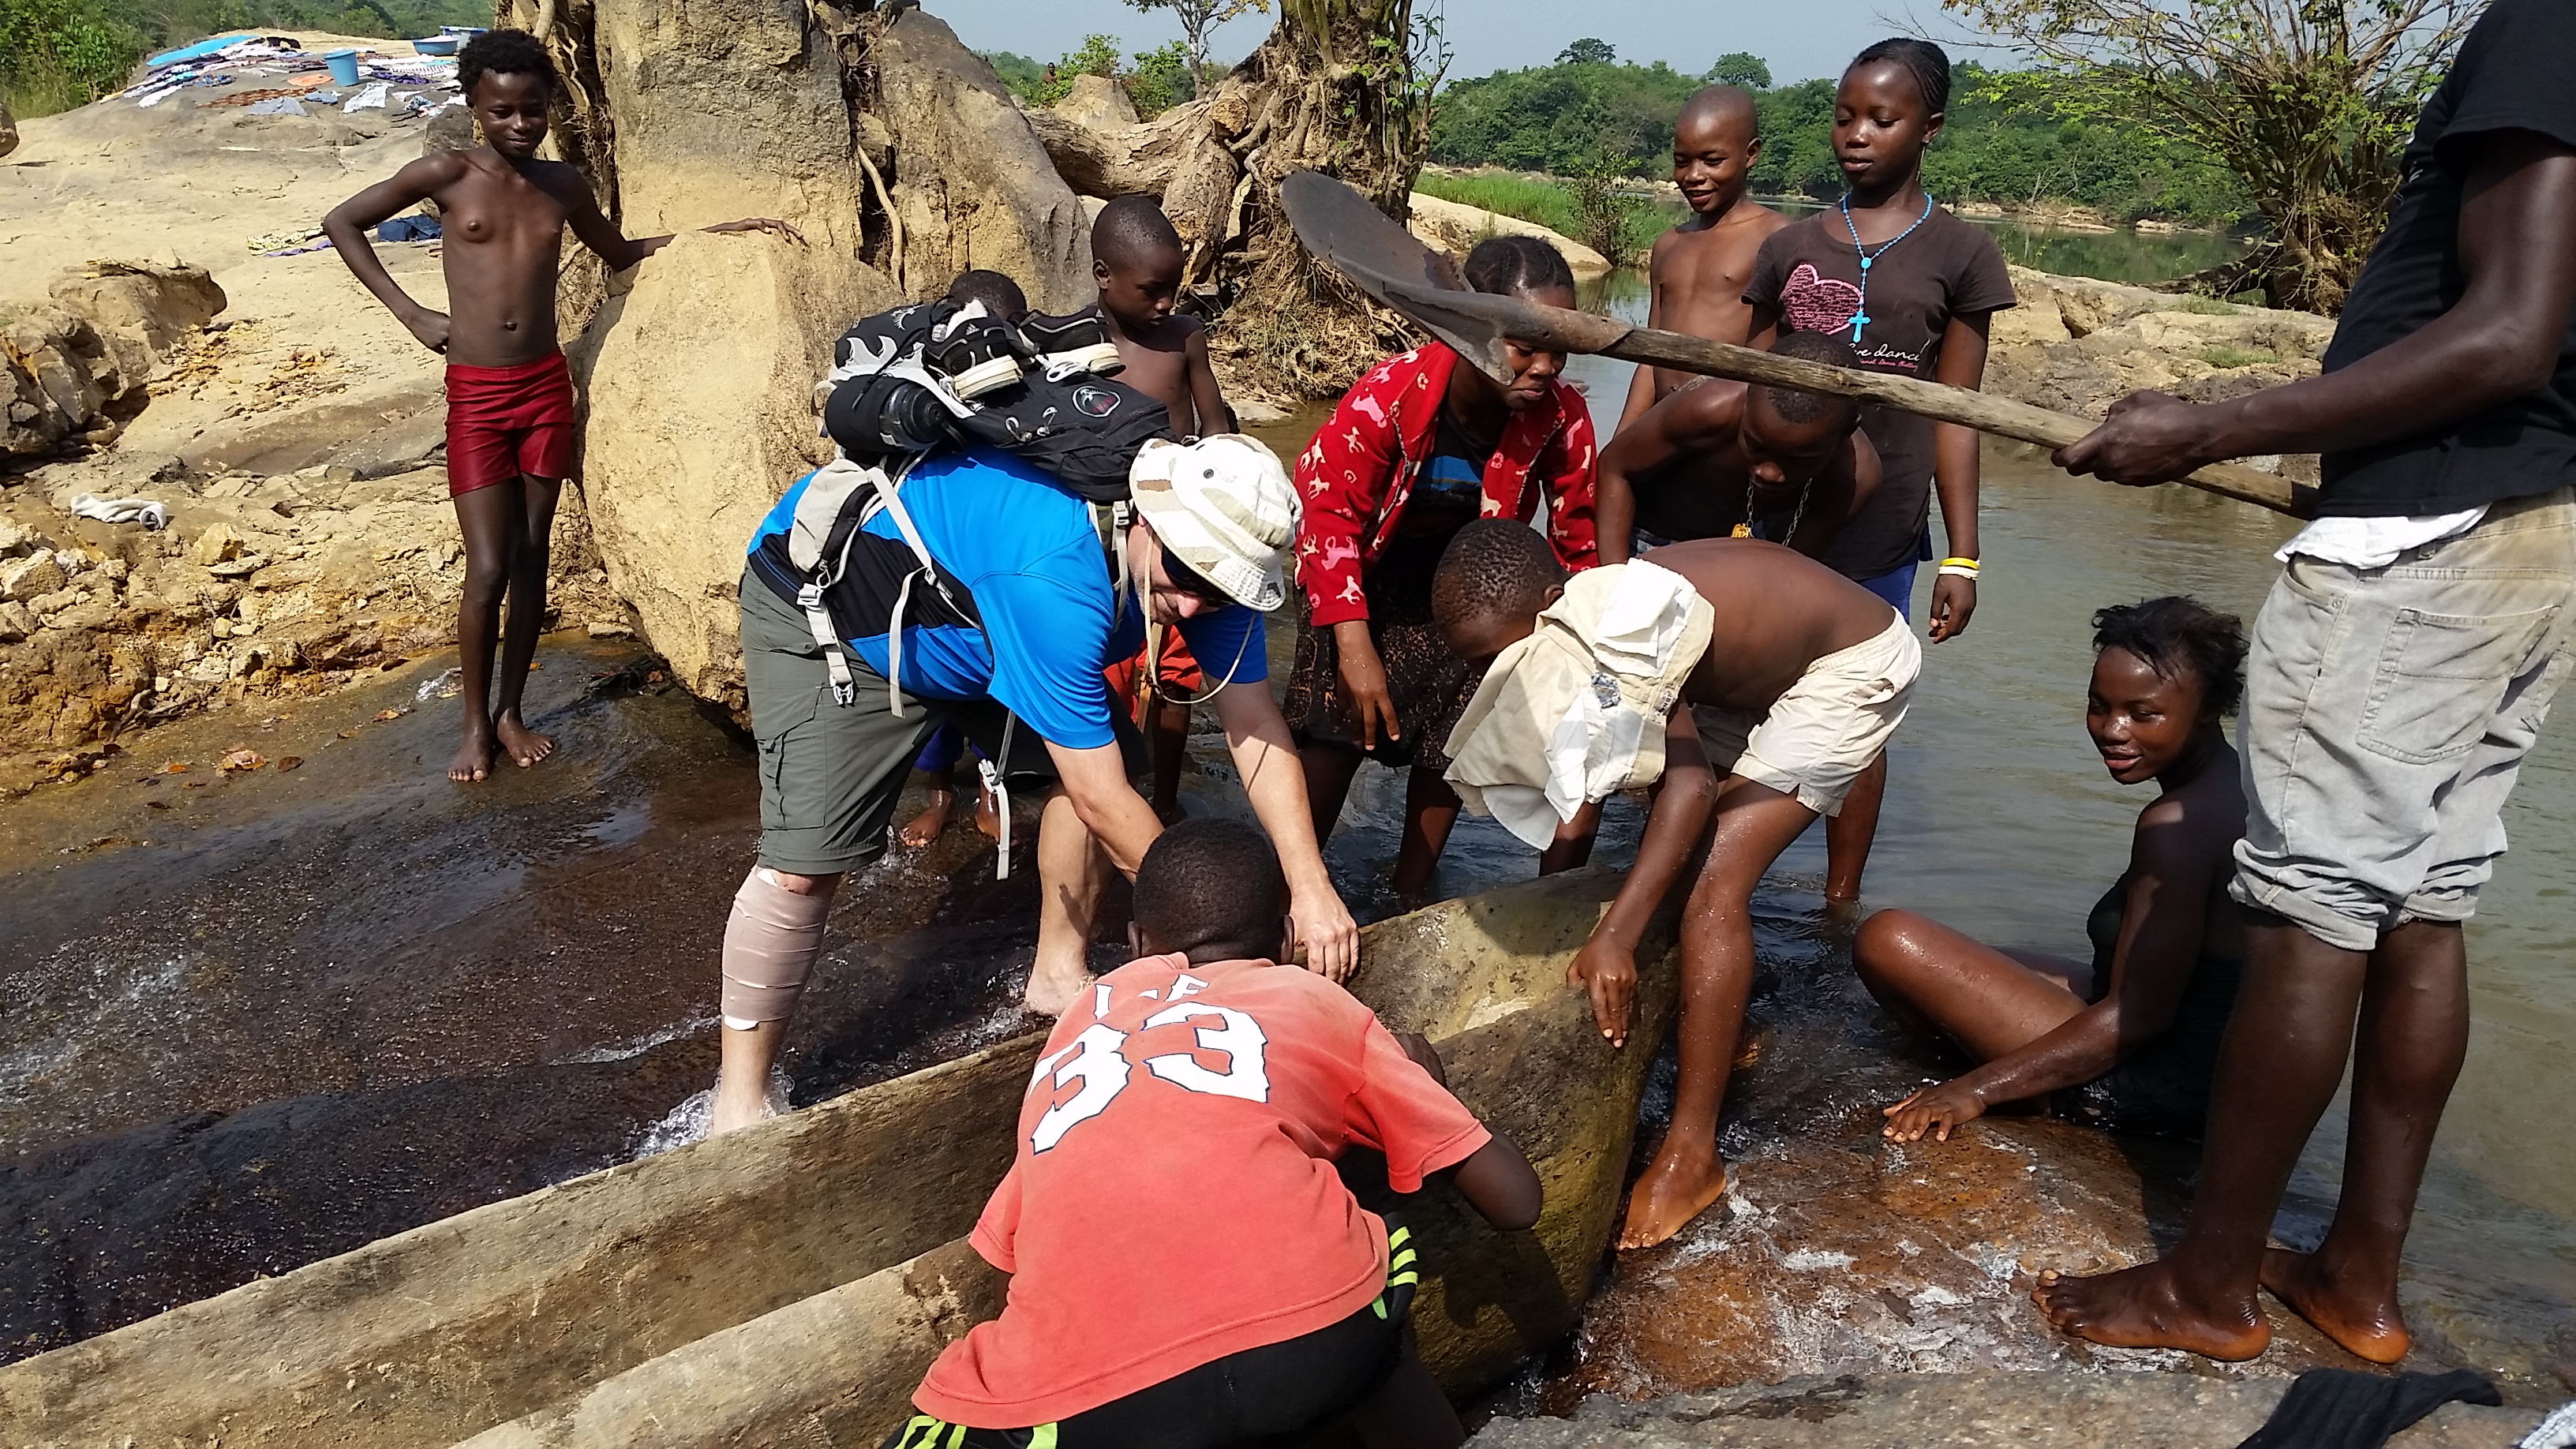 Brian helps some kids with their canoe on the Sewa river